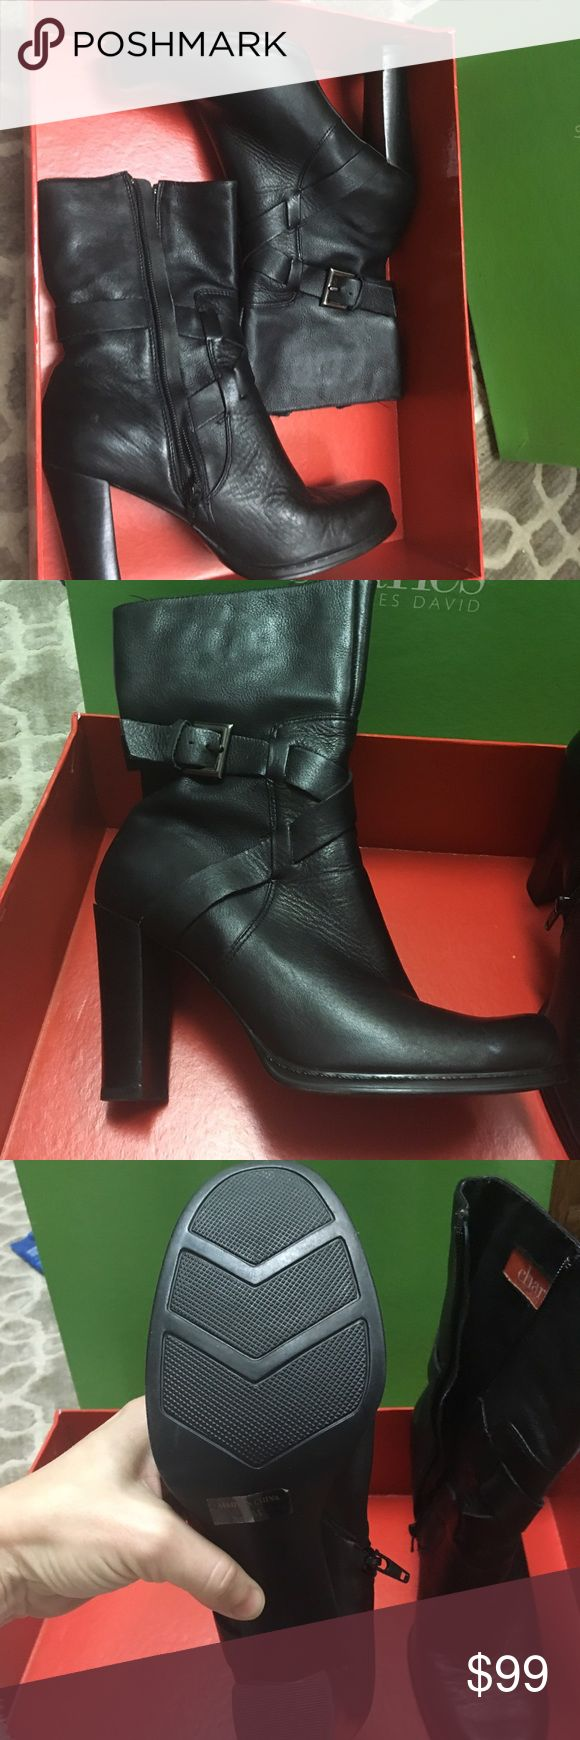 """Charles by Charles David Channel Boots - EUC Charles by Charles David Black Leather Channel Boots - EUC - Like New!  (3"""" heel).  Cover photo for style only, not color. Charles David Shoes Ankle Boots & Booties"""